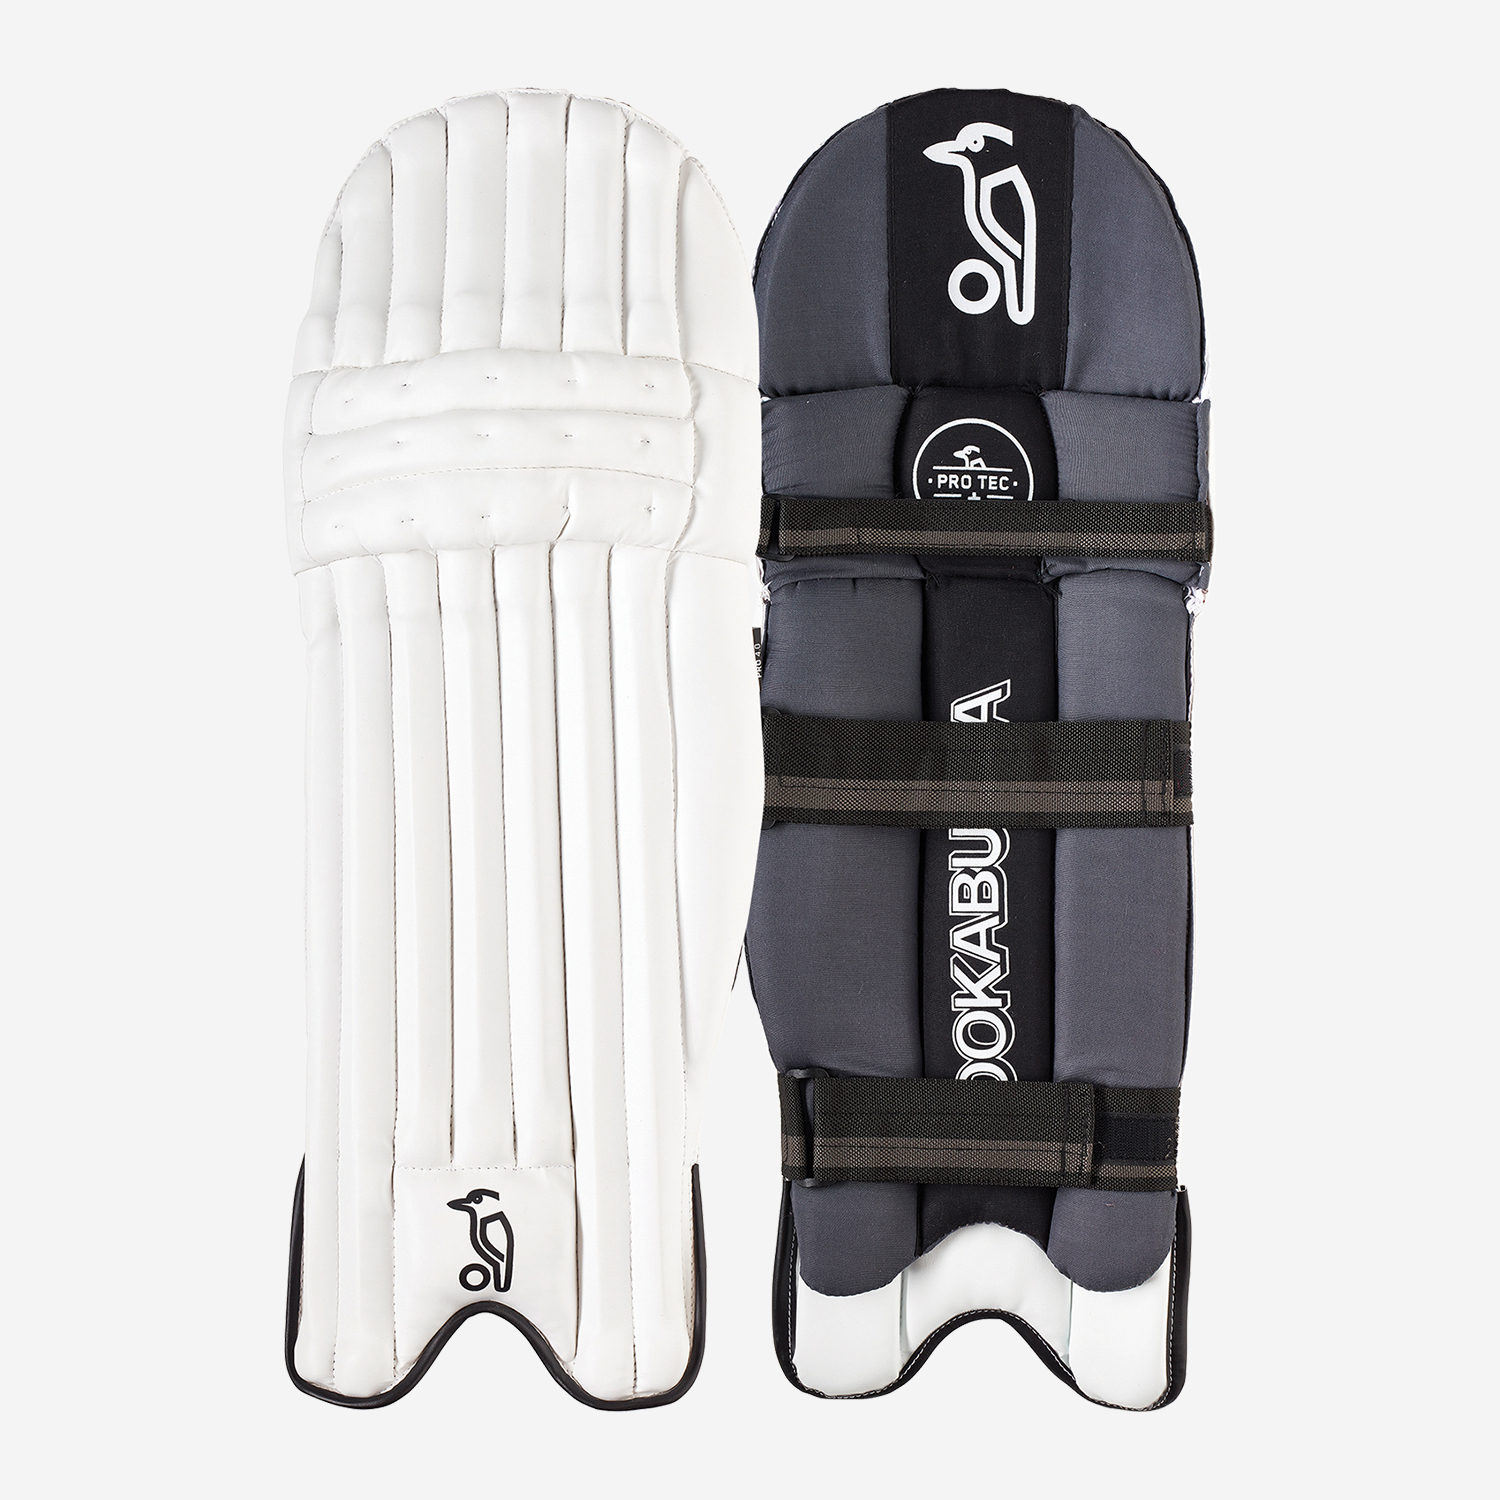 Shadow Pro 4.0 Batting Pads